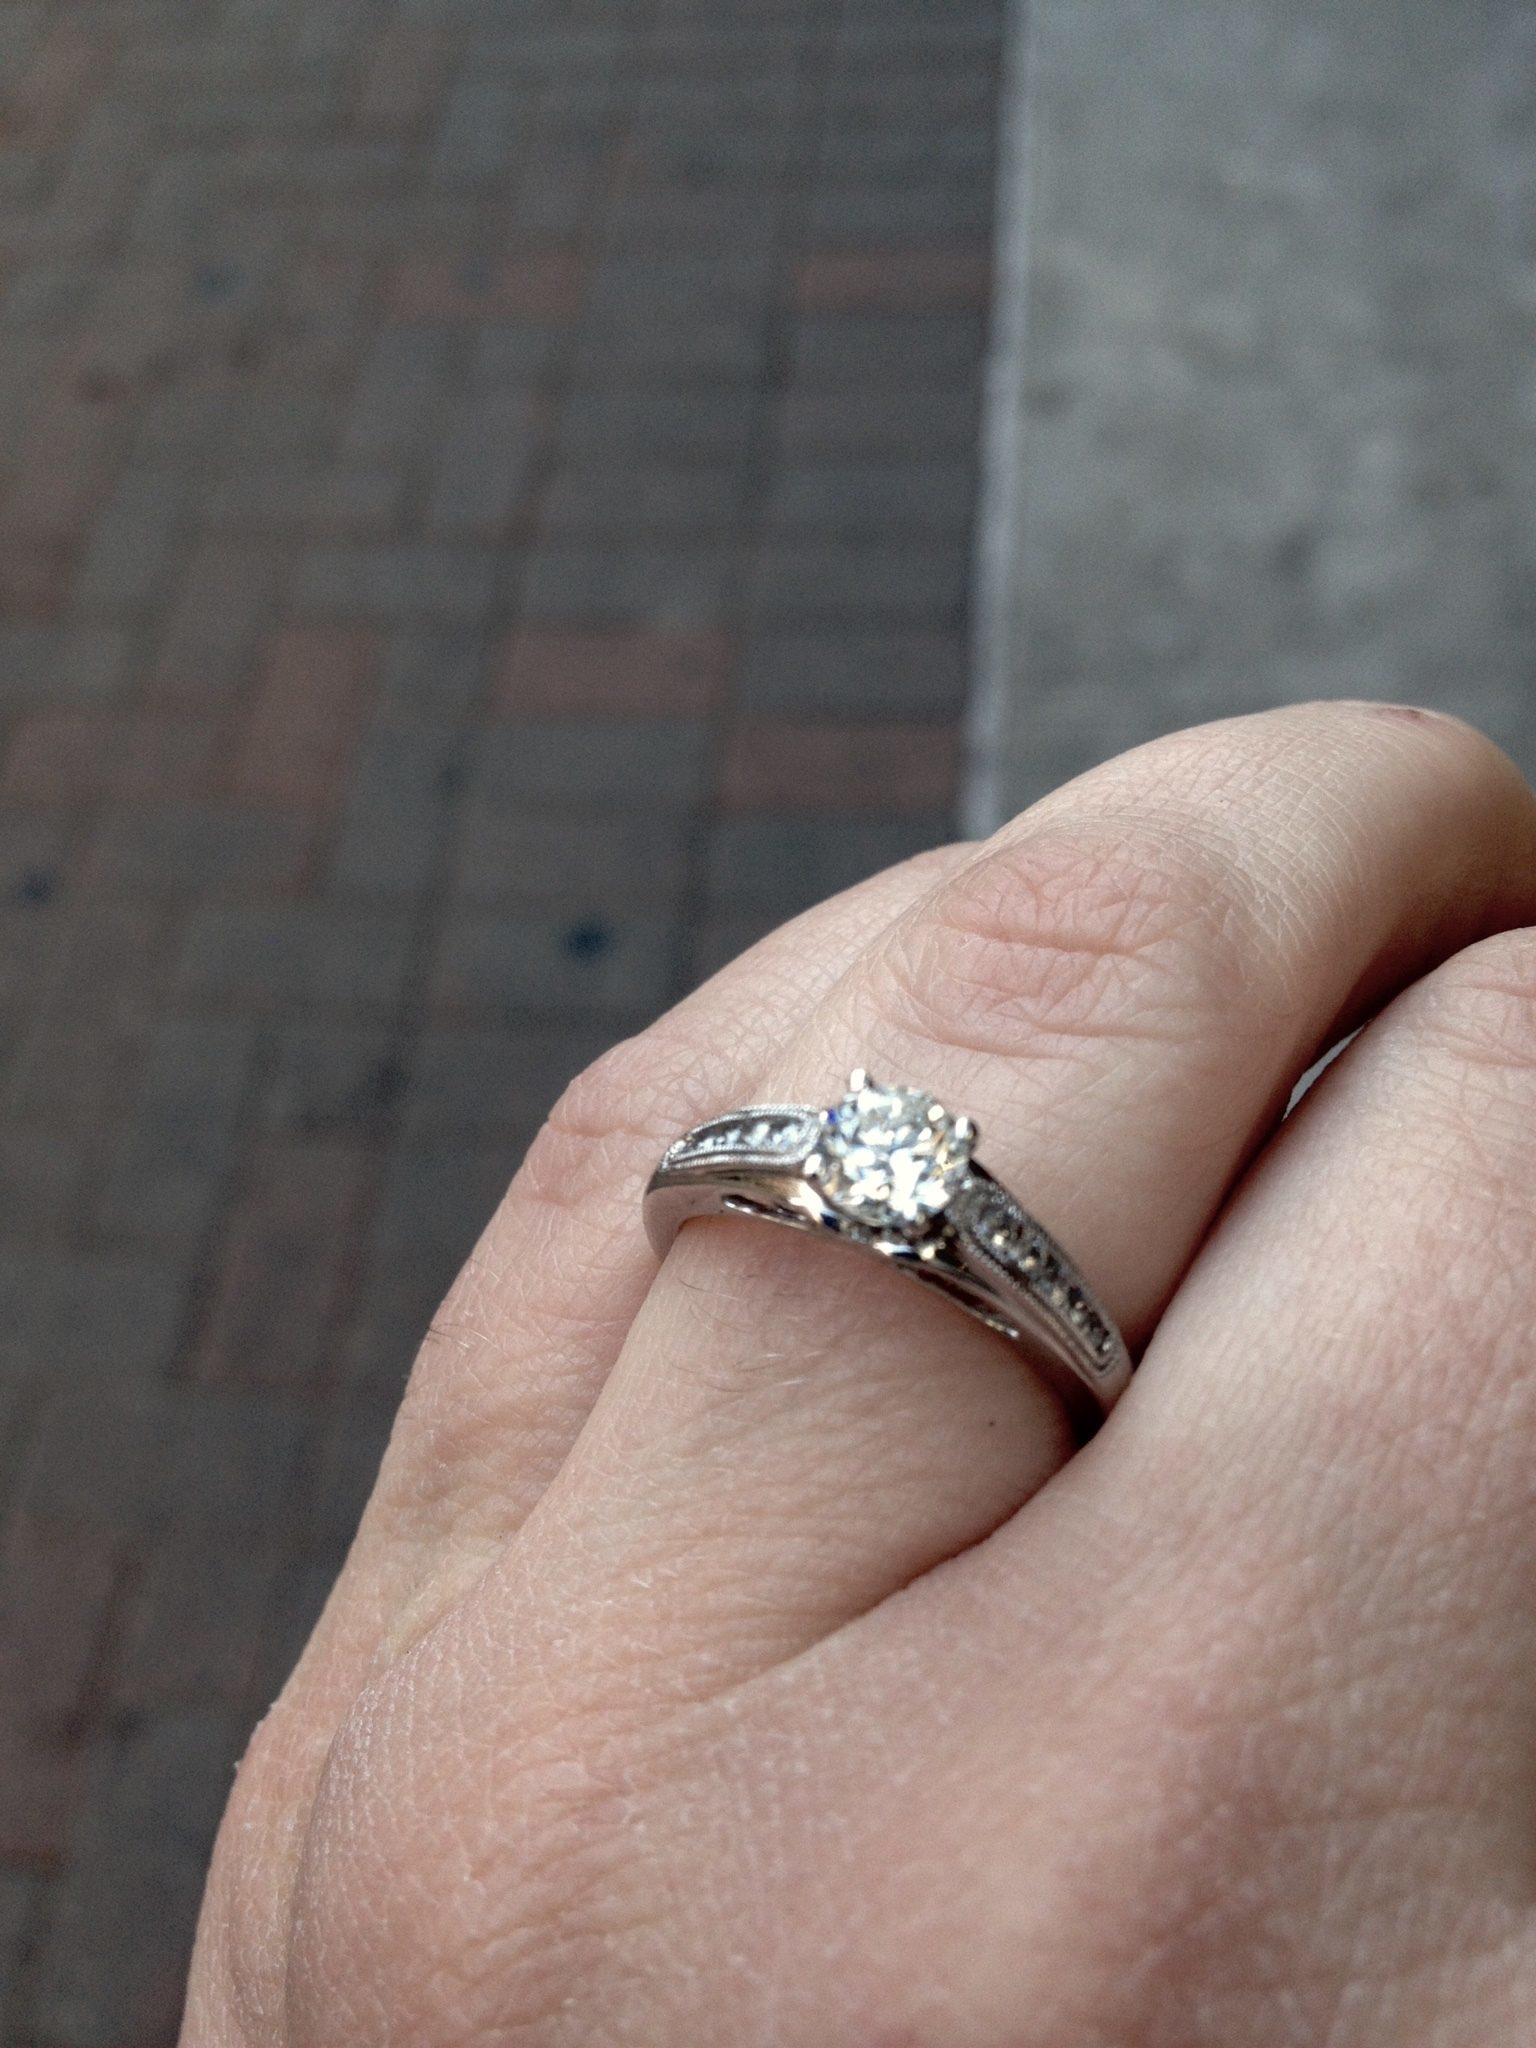 kay jewelers kay jewelers wedding ring My fiance and I went into Kay Jewelers in January to shop for an engagement ring The saleswoman was very friendly and helpful